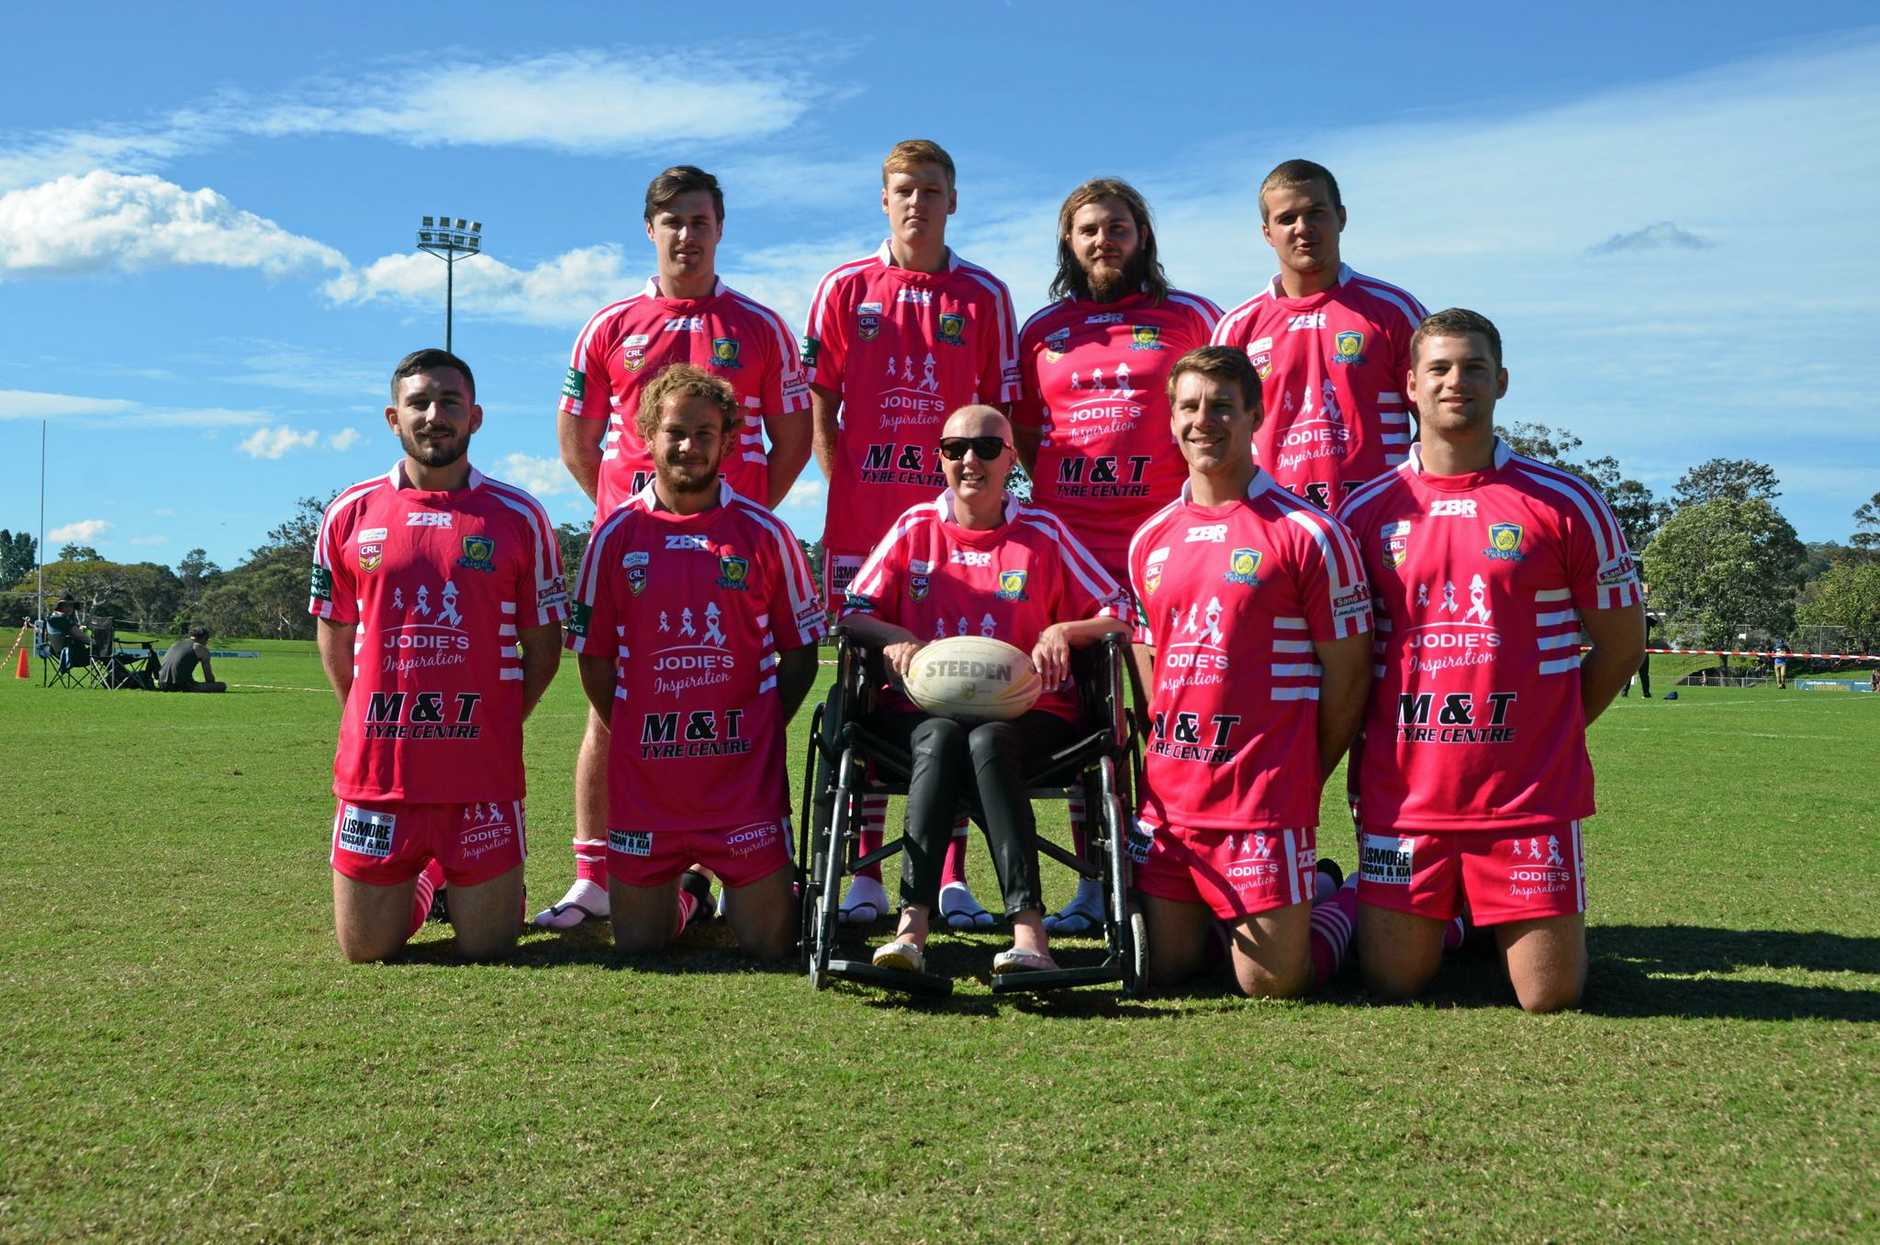 The Marist Brothers Rams wore pink to support Jodie McRae (centre) and her charity, Jodie's Inspiration, at the Rugby League Football Club Day on the weekend.